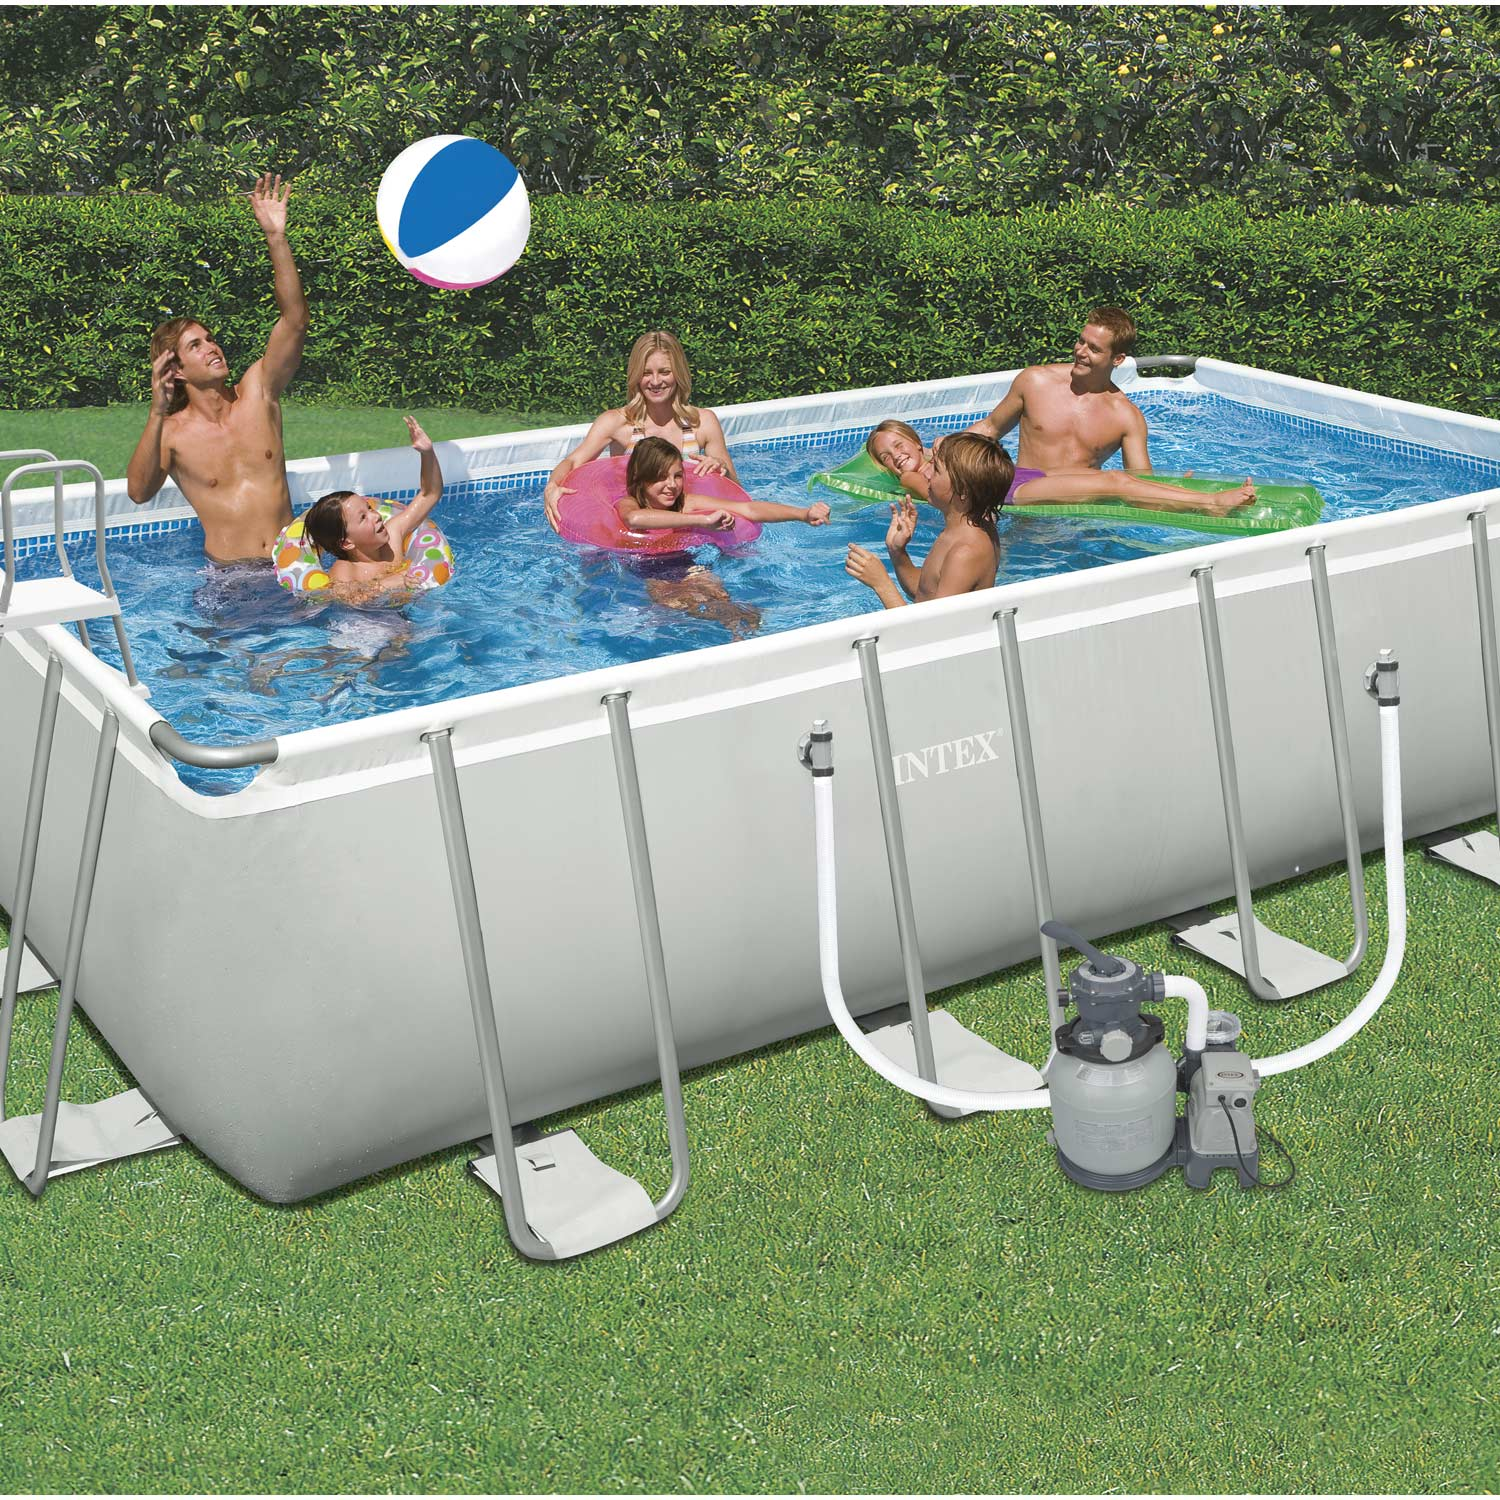 Piscine hors sol autoportante tubulaire intex l x l for Buse de refoulement piscine hors sol